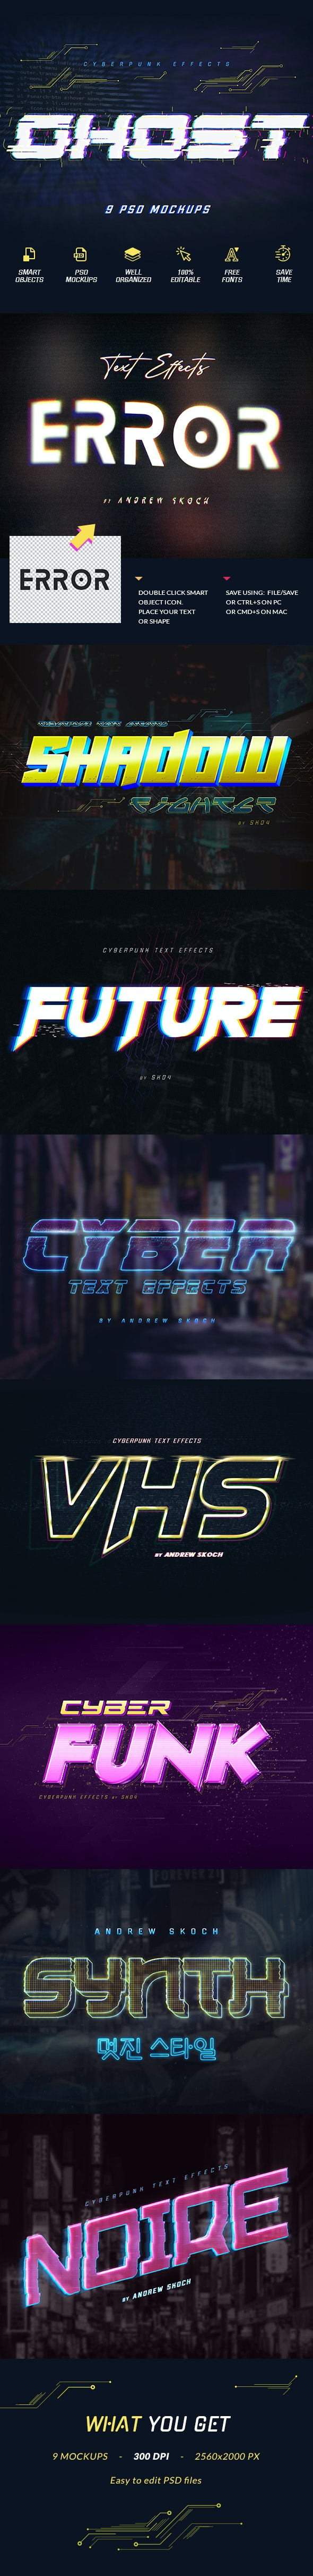 Cyberpunk Text Effects vol 2 - Text Effects Actions